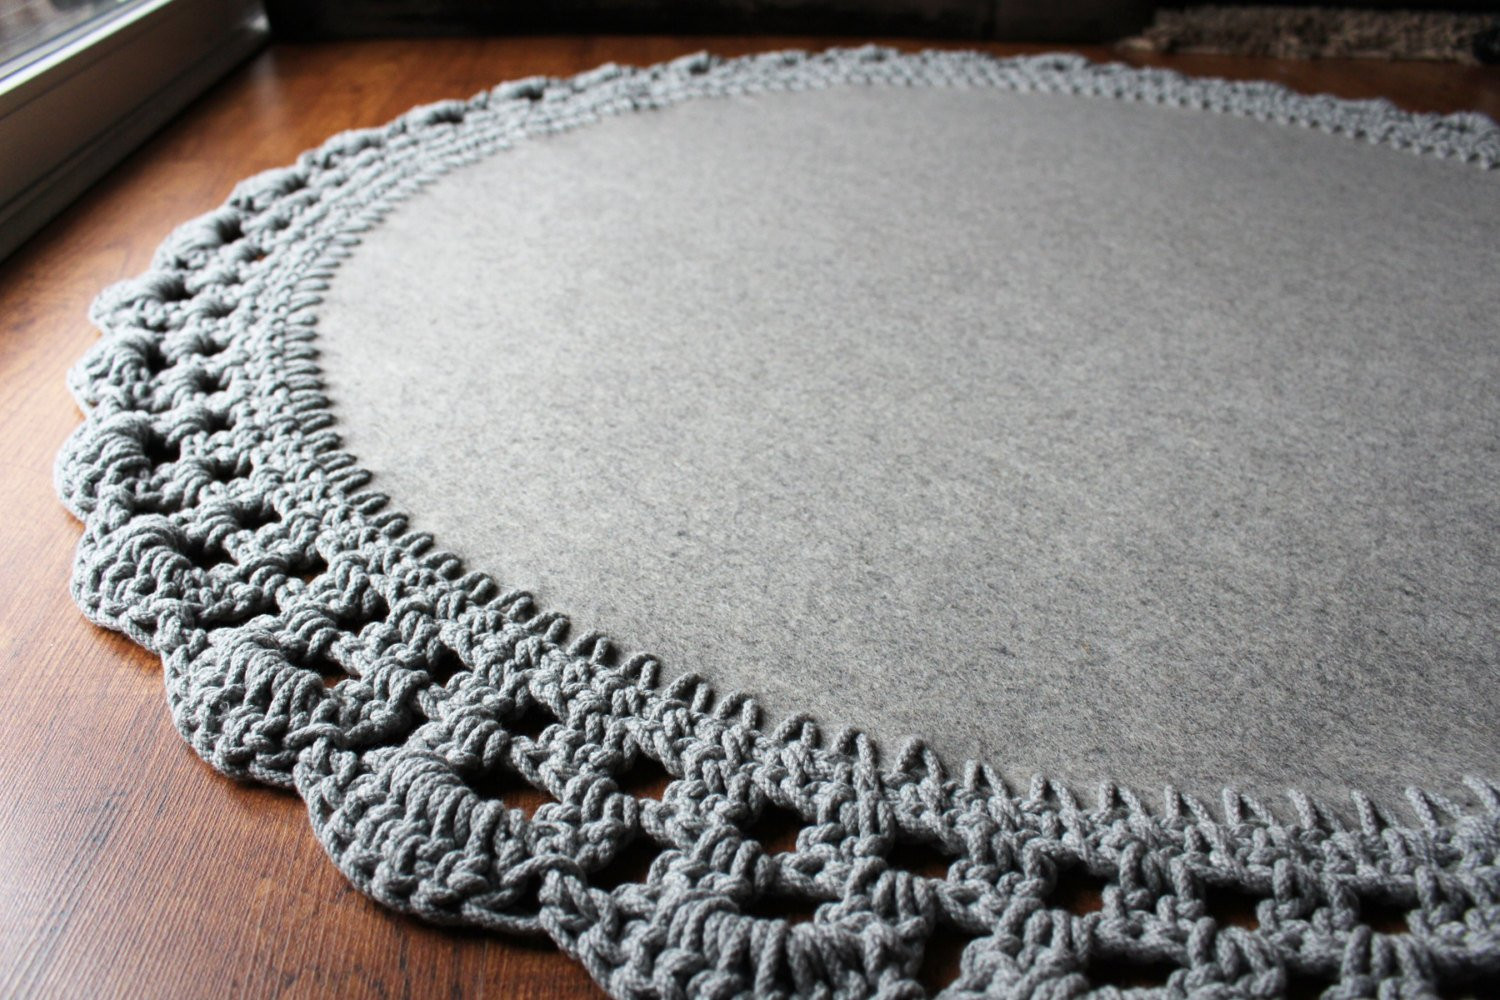 Crochet Rope Rug Lovely Round Wool Rug with Crocheted Cotton Rope Edge Of Luxury 46 Models Crochet Rope Rug